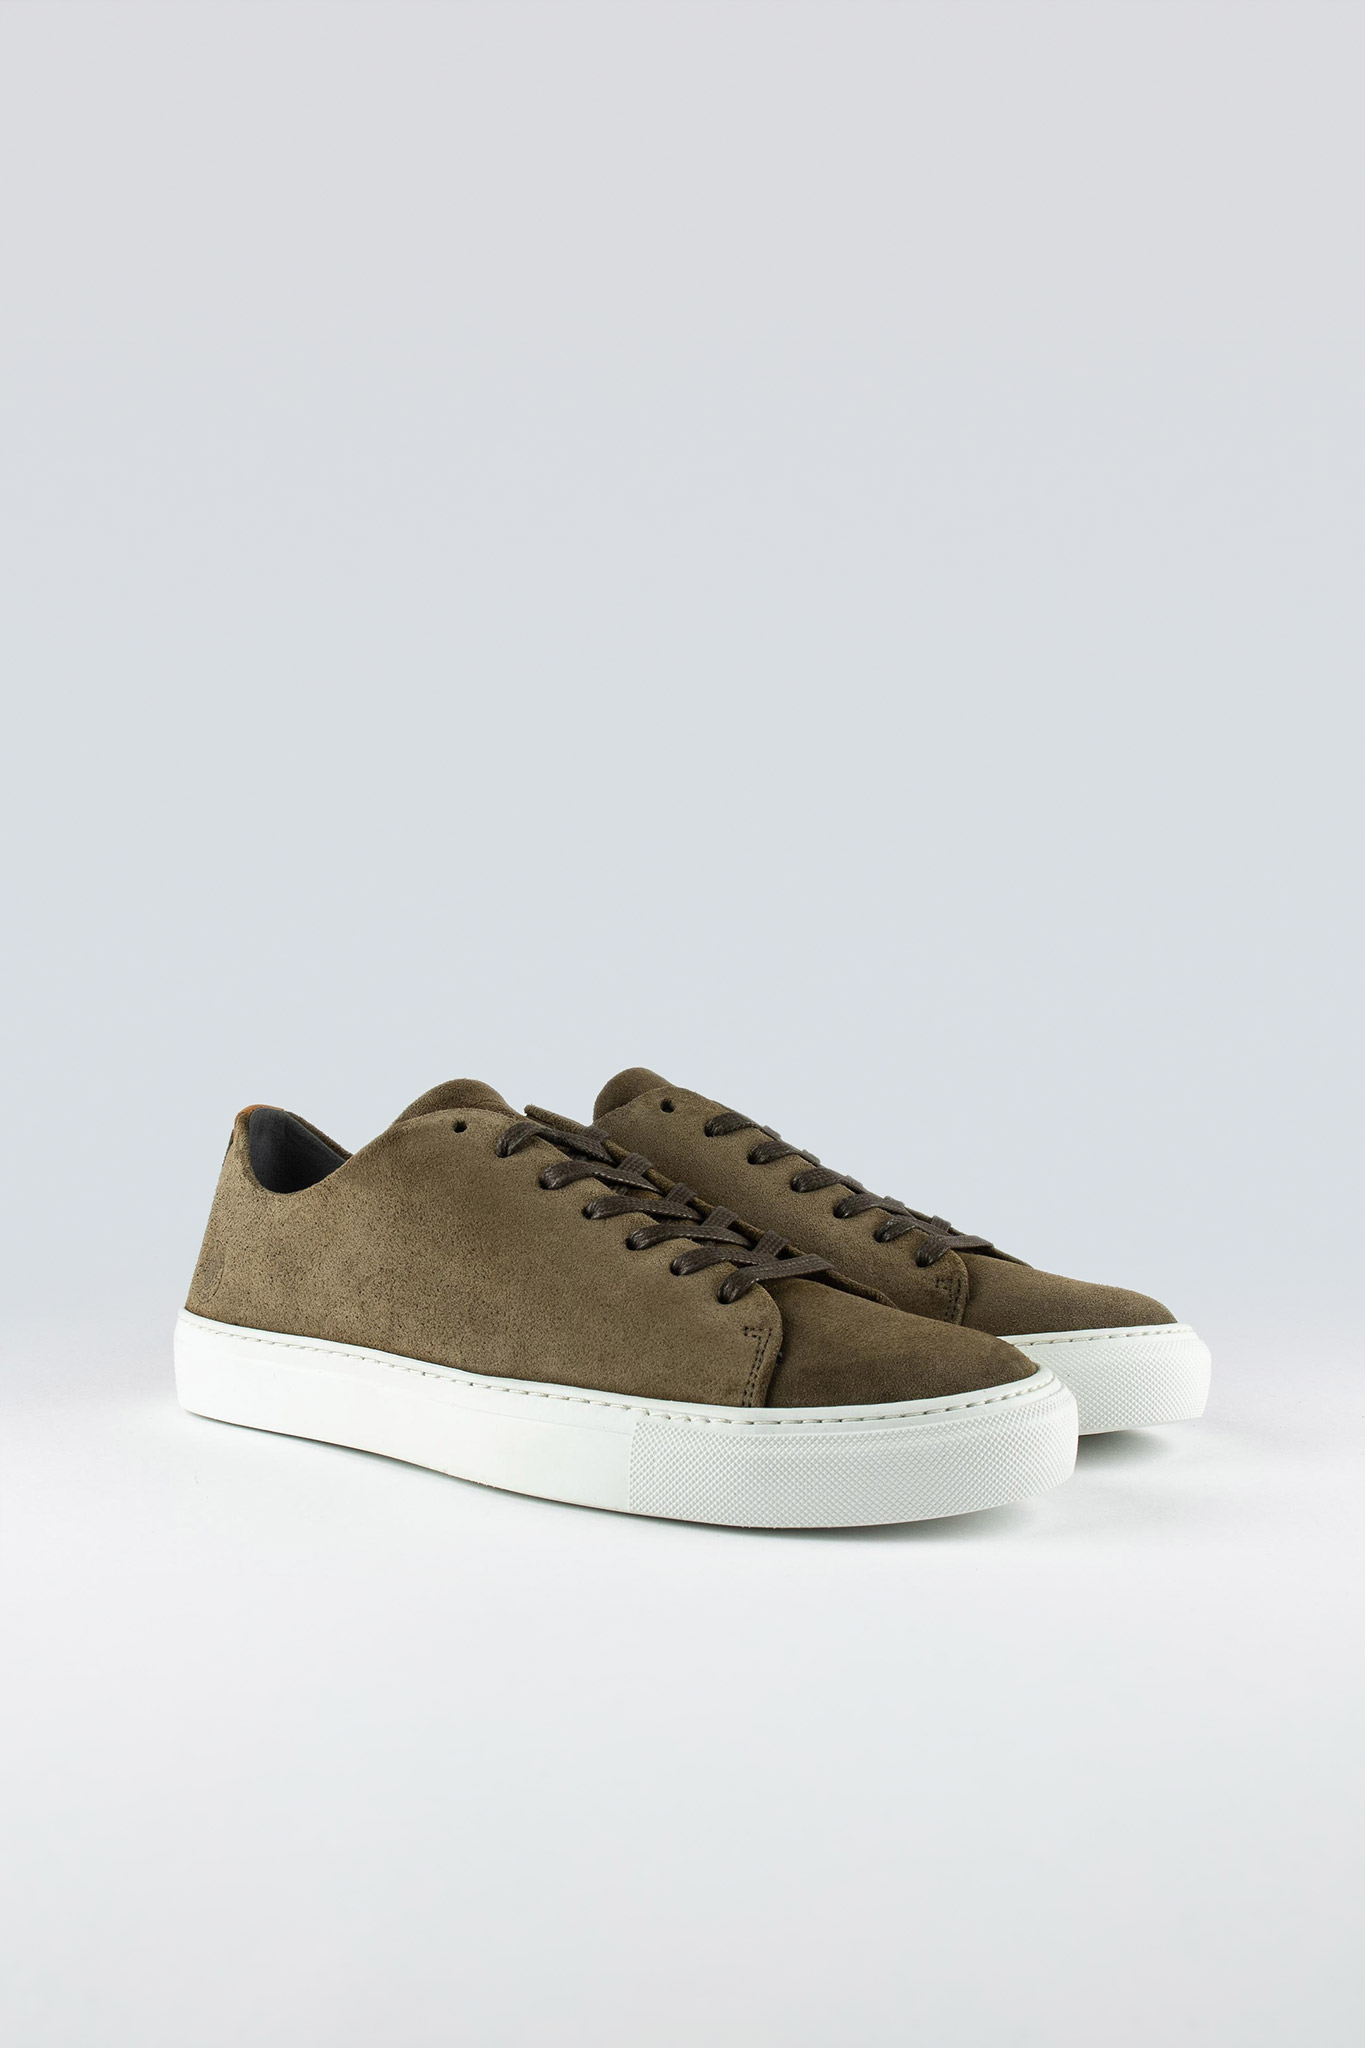 Less Suede Kaki